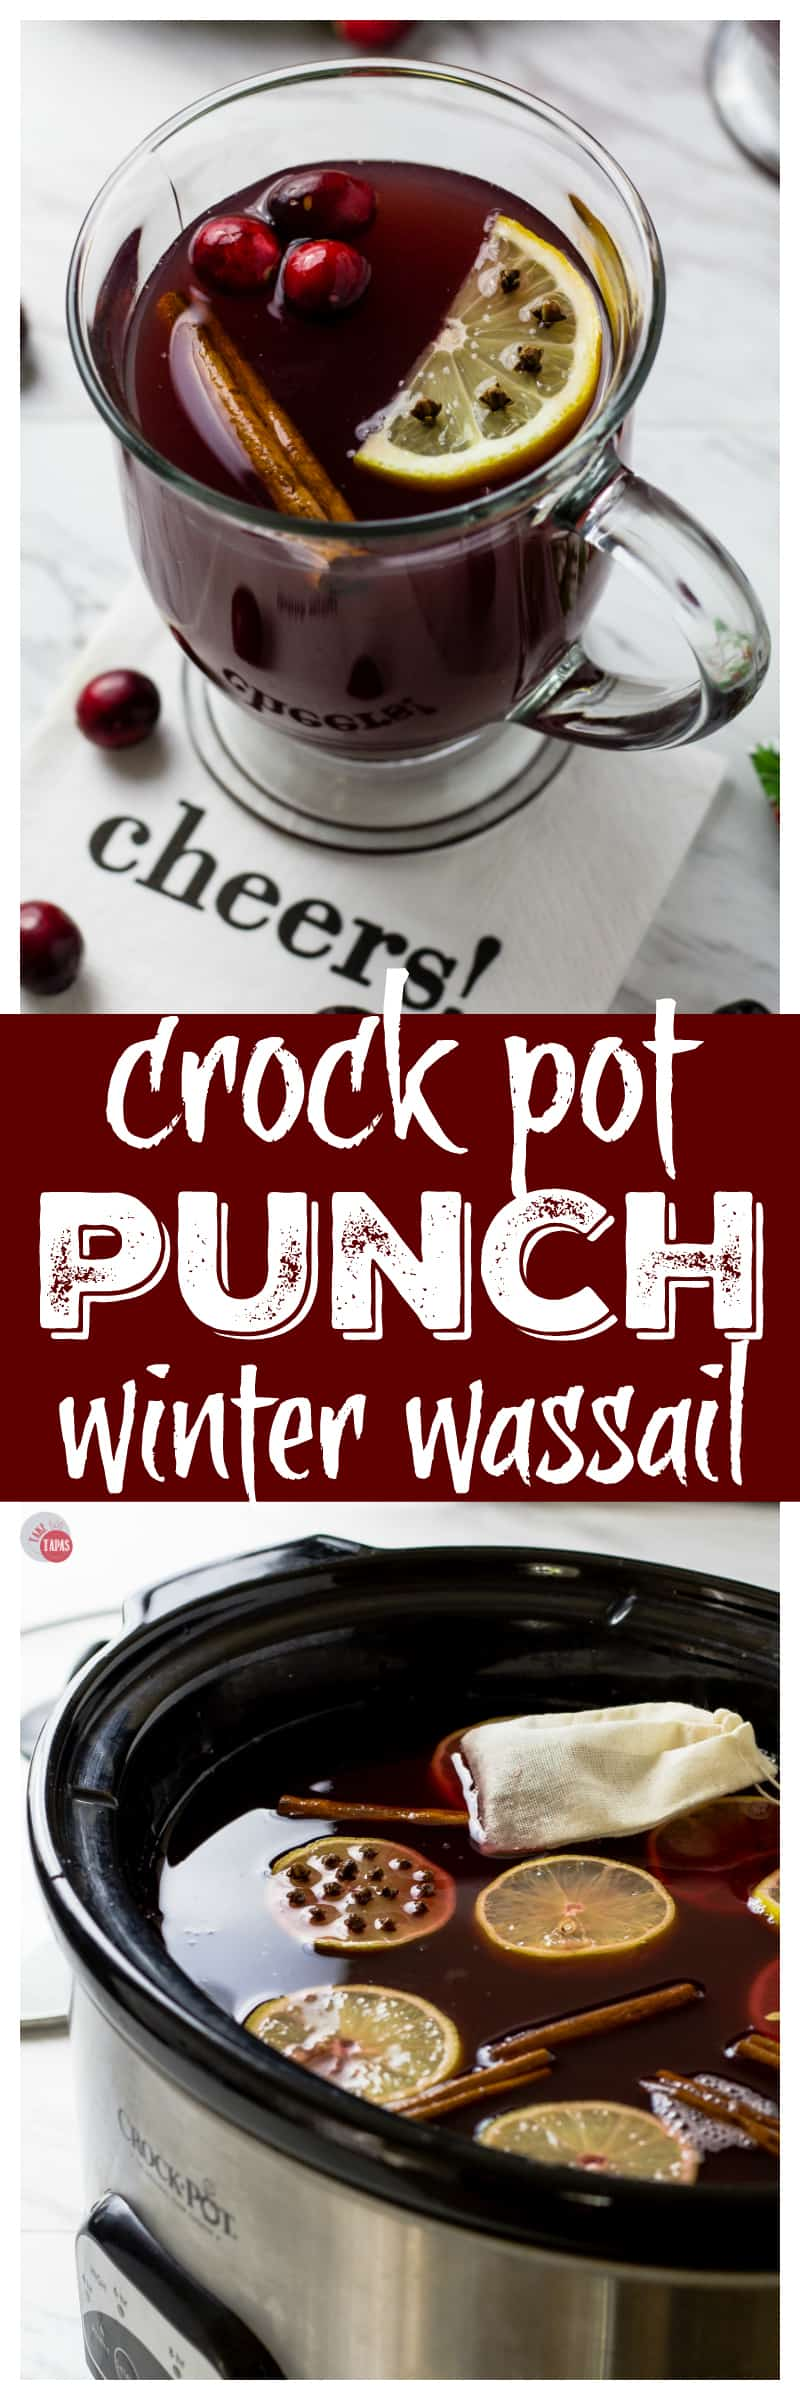 Slow Cooker Winter Punch | Wassail | #Slowcooker #Crockpot #Winter #Punch #Holidays #Wassail